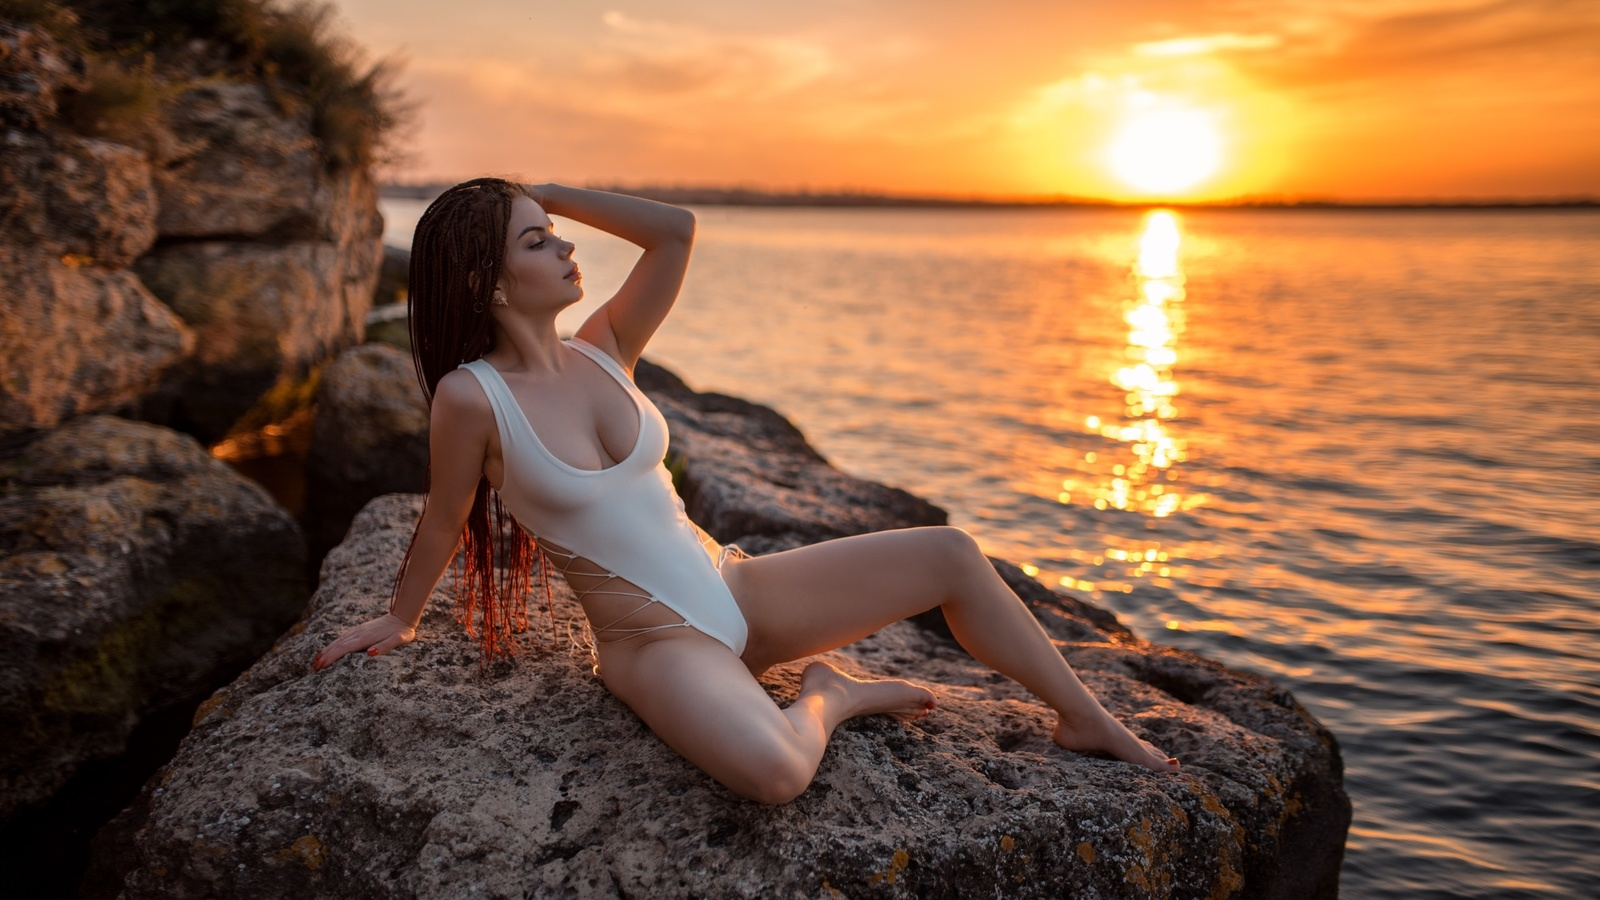 women, one-piece swimsuit, rocks, sunset, women outdoors, brunette, sea, sky, sitting, red nails, long hair